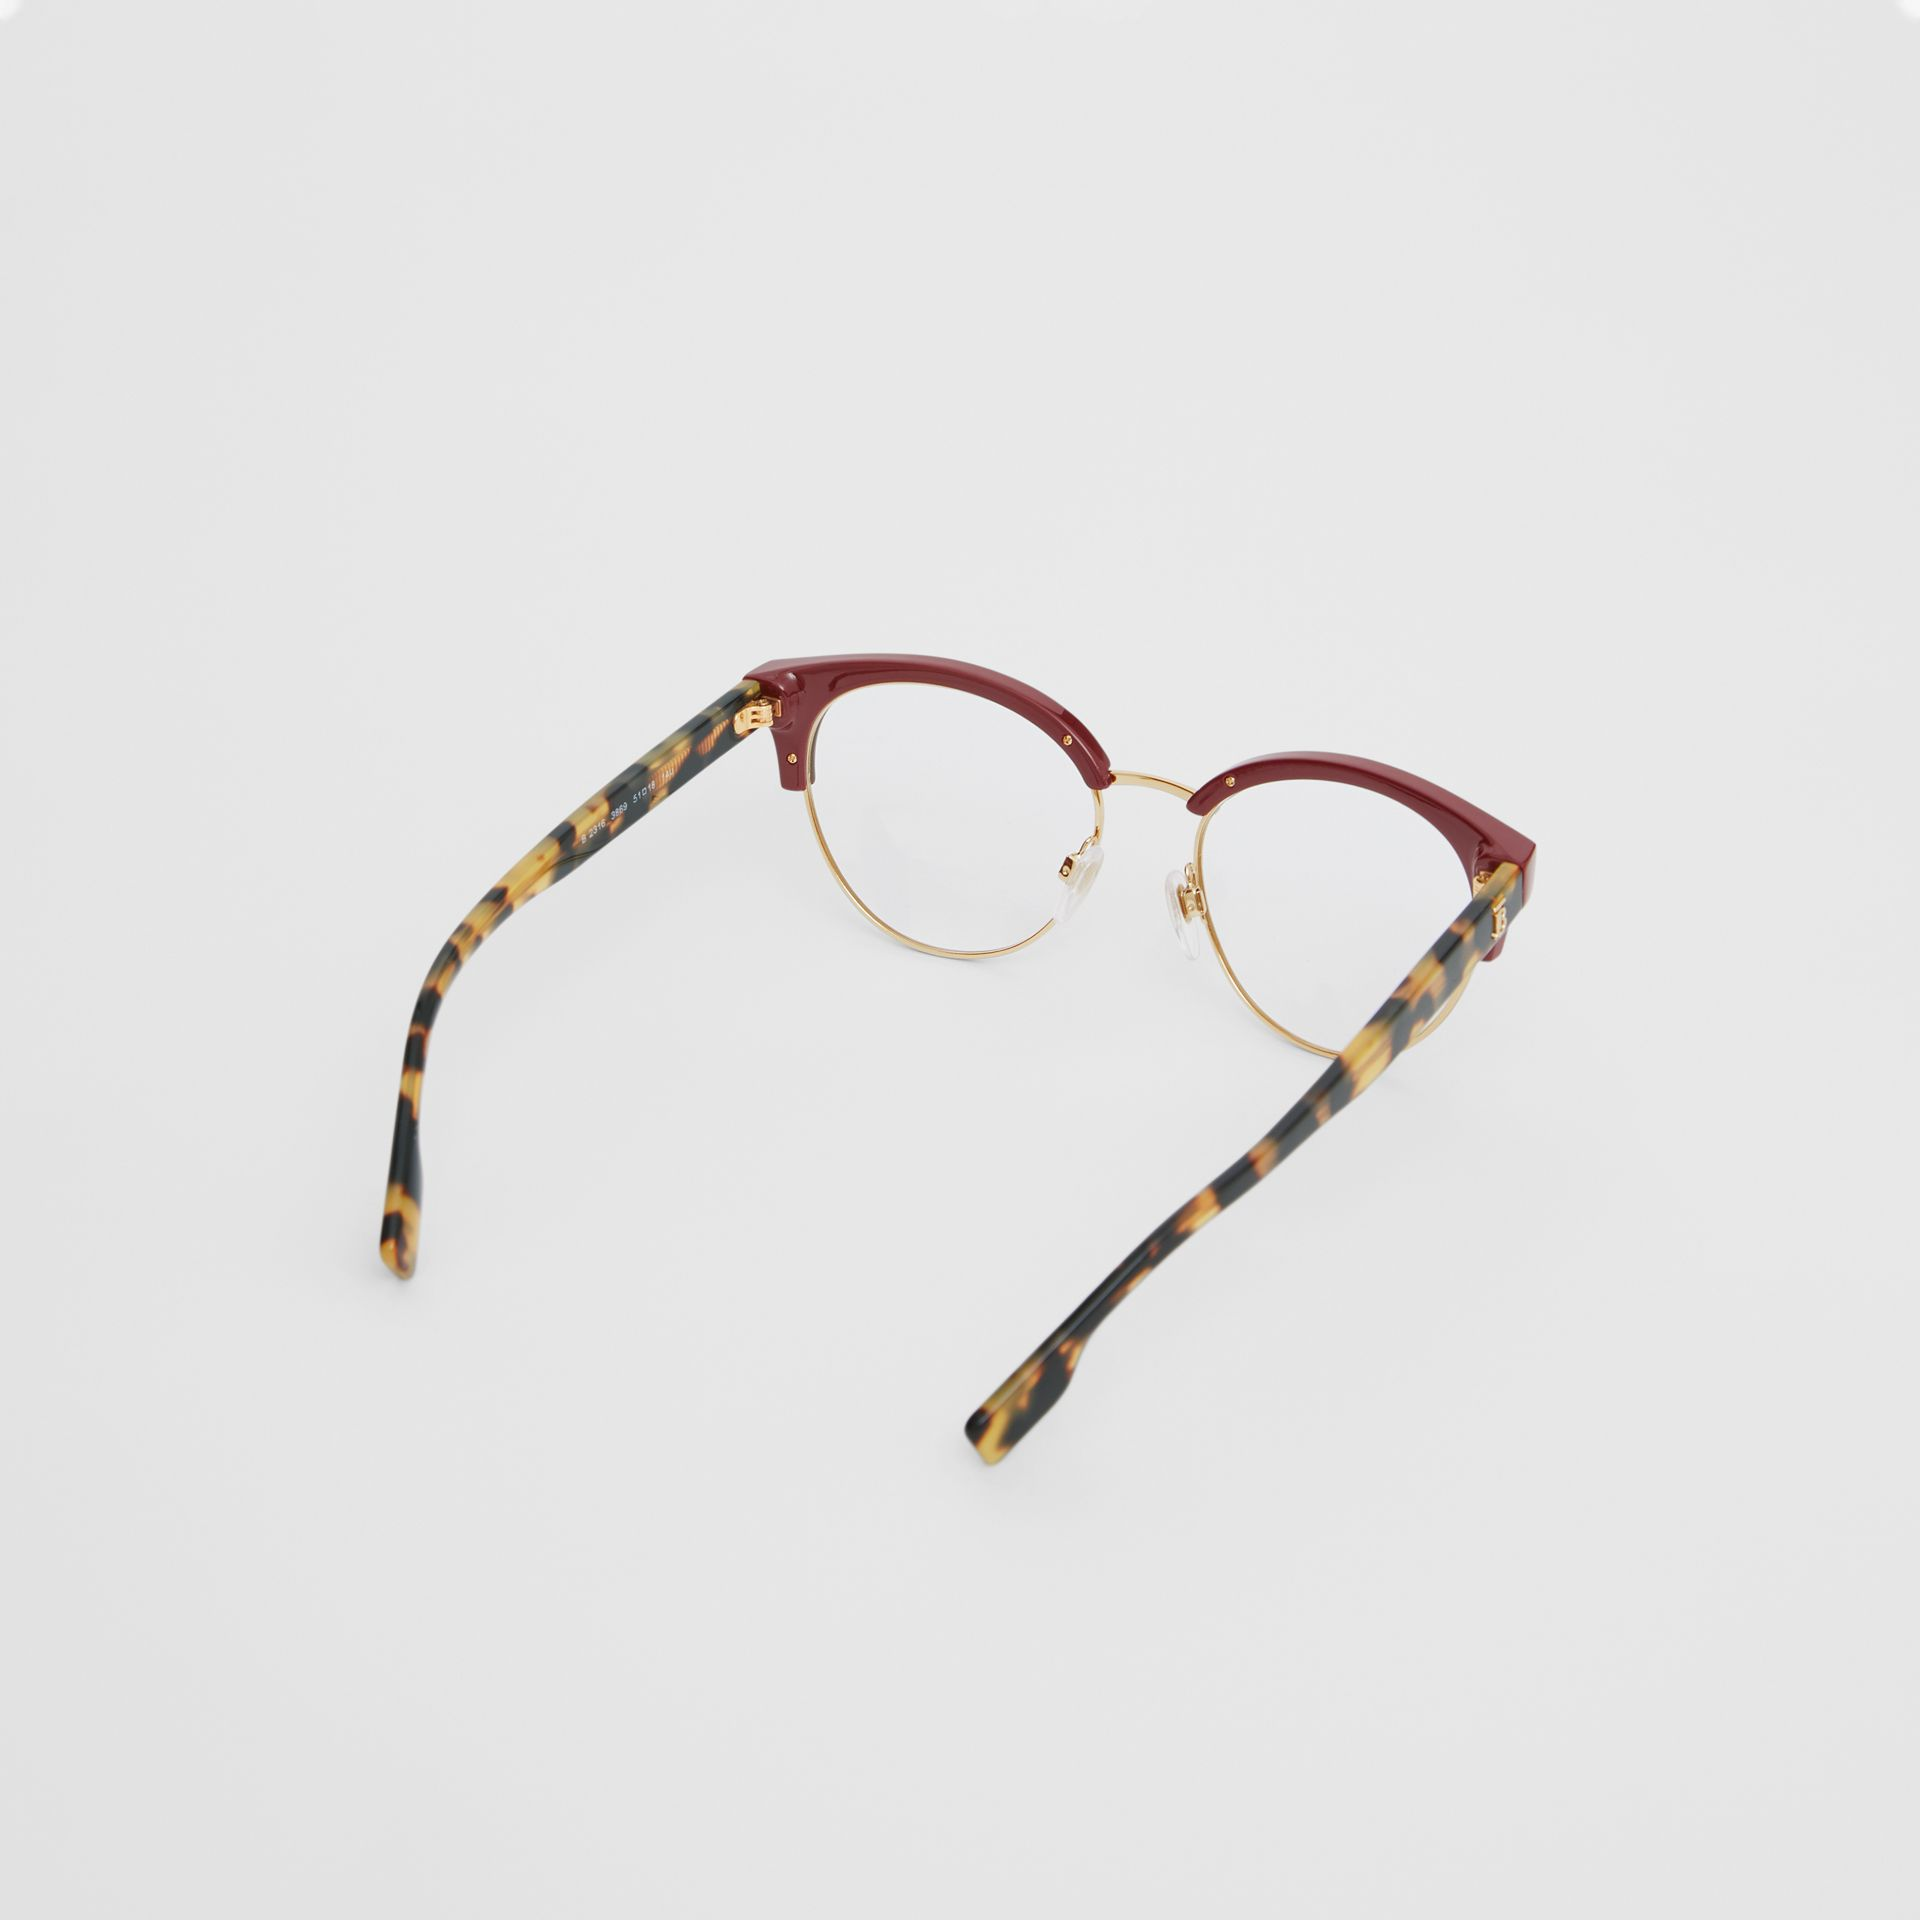 Cat-eye Optical Frames in Burgundy - Women | Burberry Australia - gallery image 4